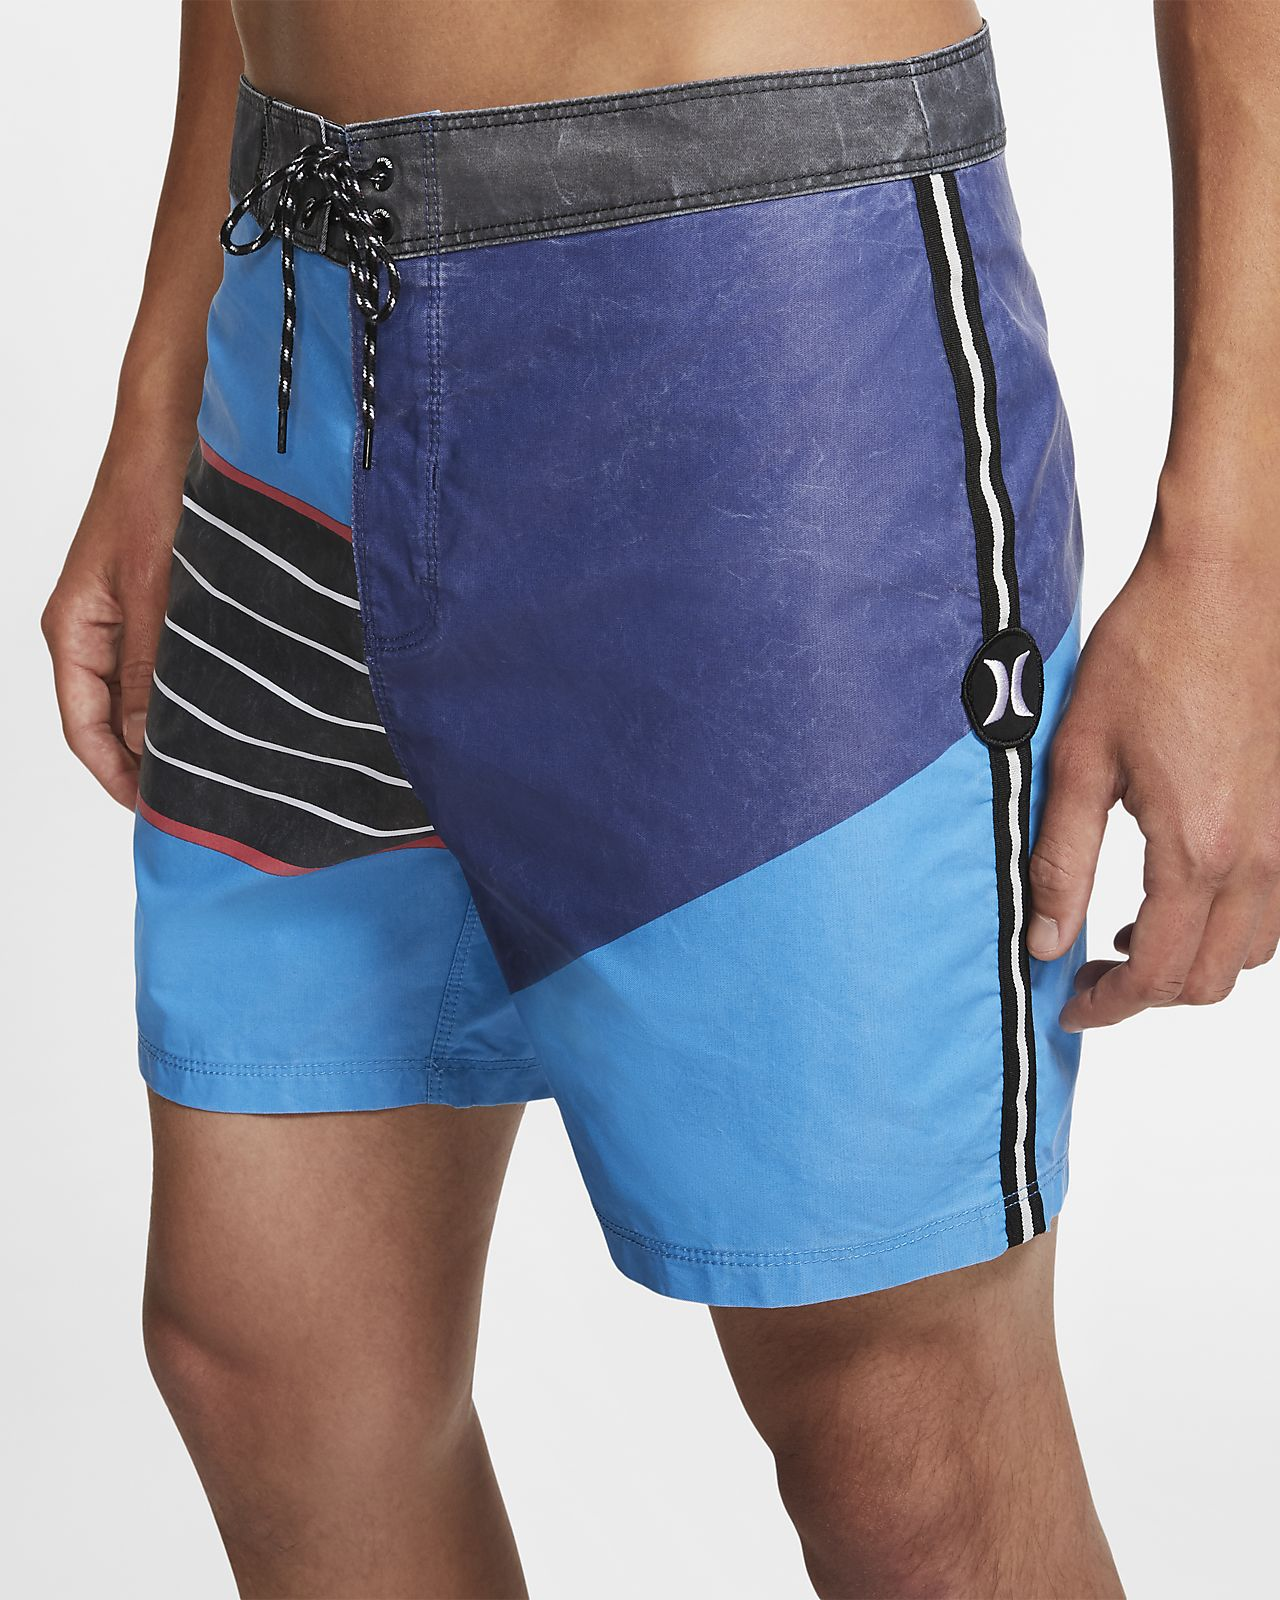 Hurley Maritime Men's 41cm (approx.) Boardshorts